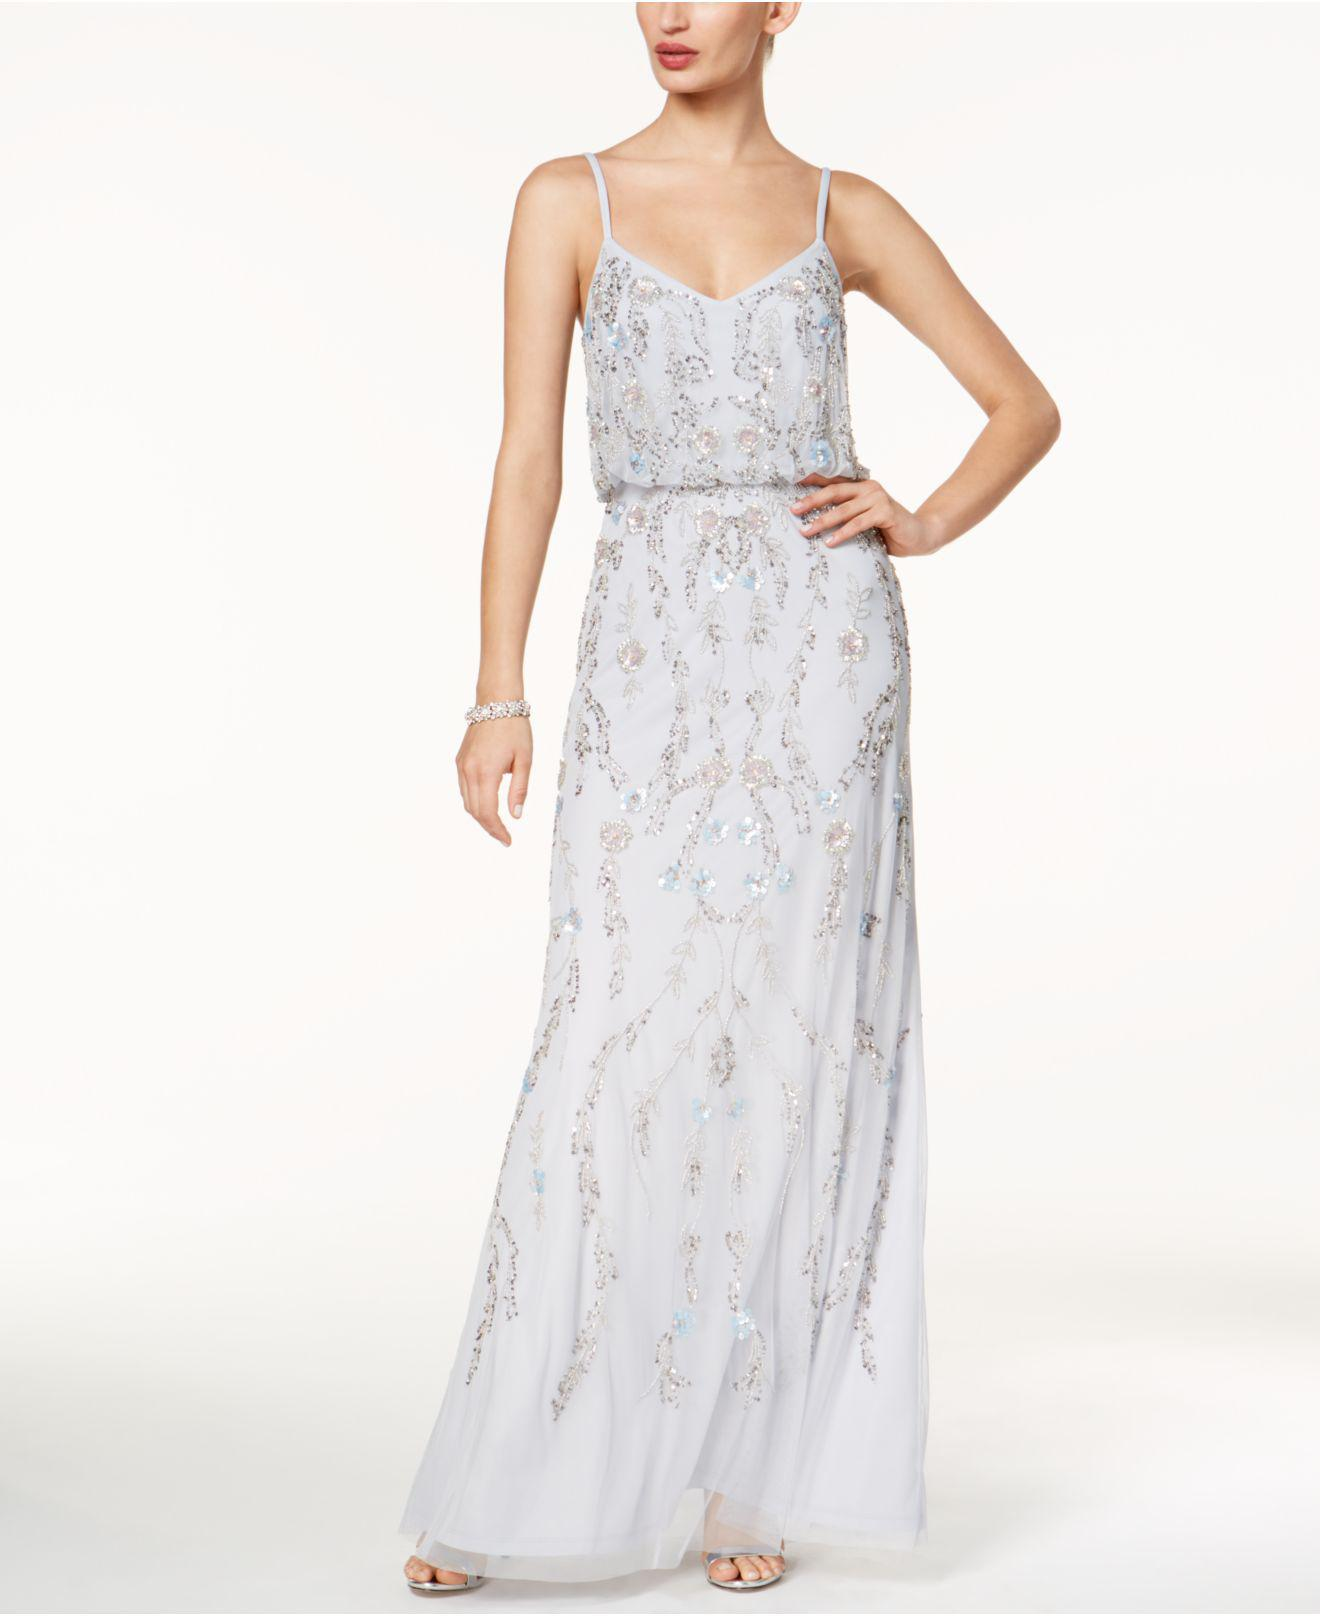 195c7ee009c6 Adrianna Papell. Women s Floral Beaded Blouson Gown